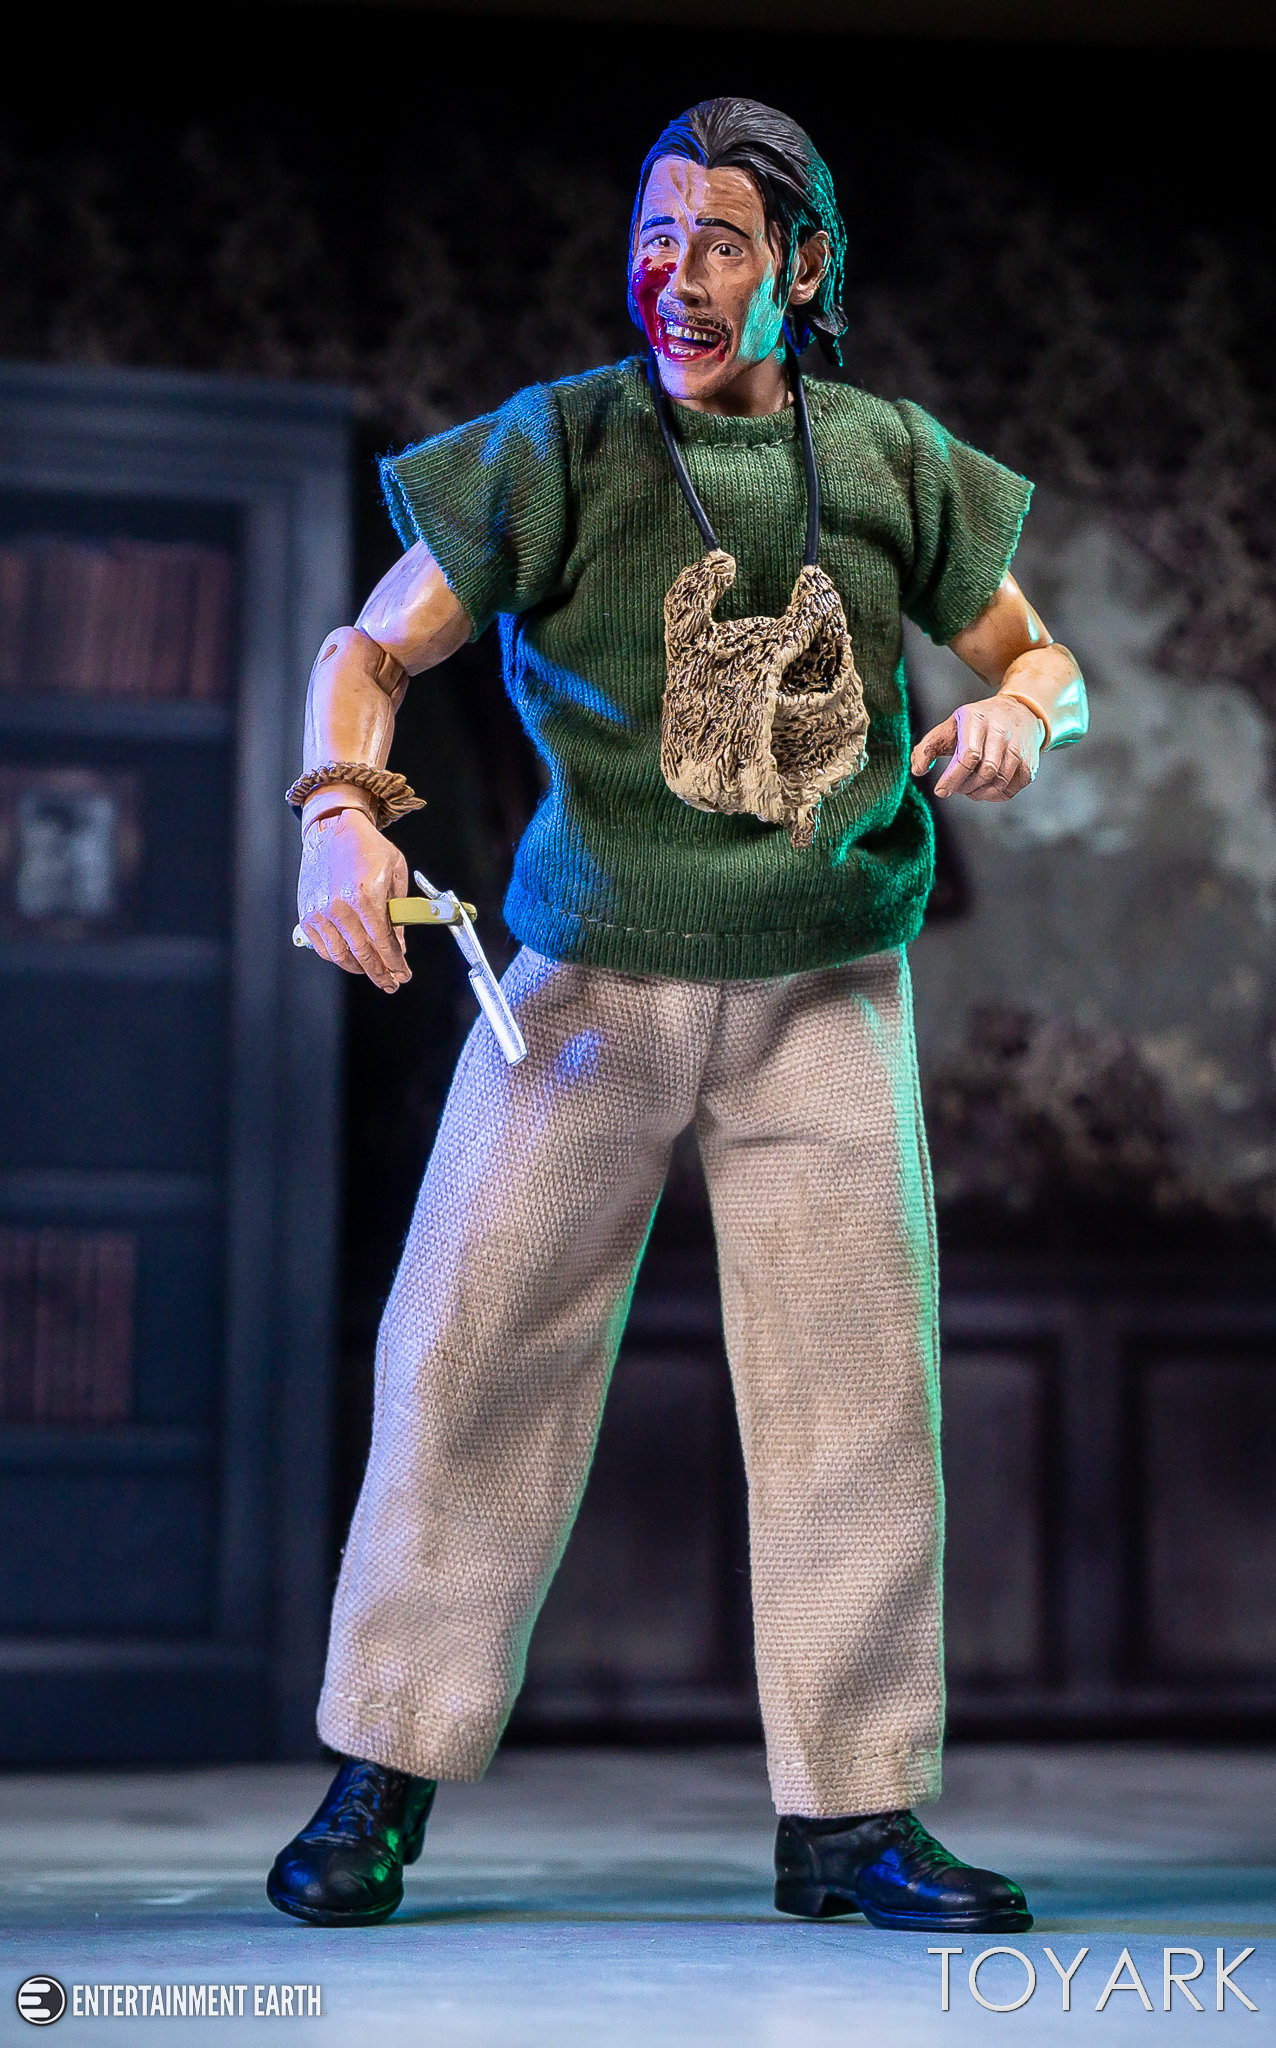 http://news.toyark.com/wp-content/uploads/sites/4/2018/04/Texas-Chainsaw-Nubbins-Set-NECA-028.jpg